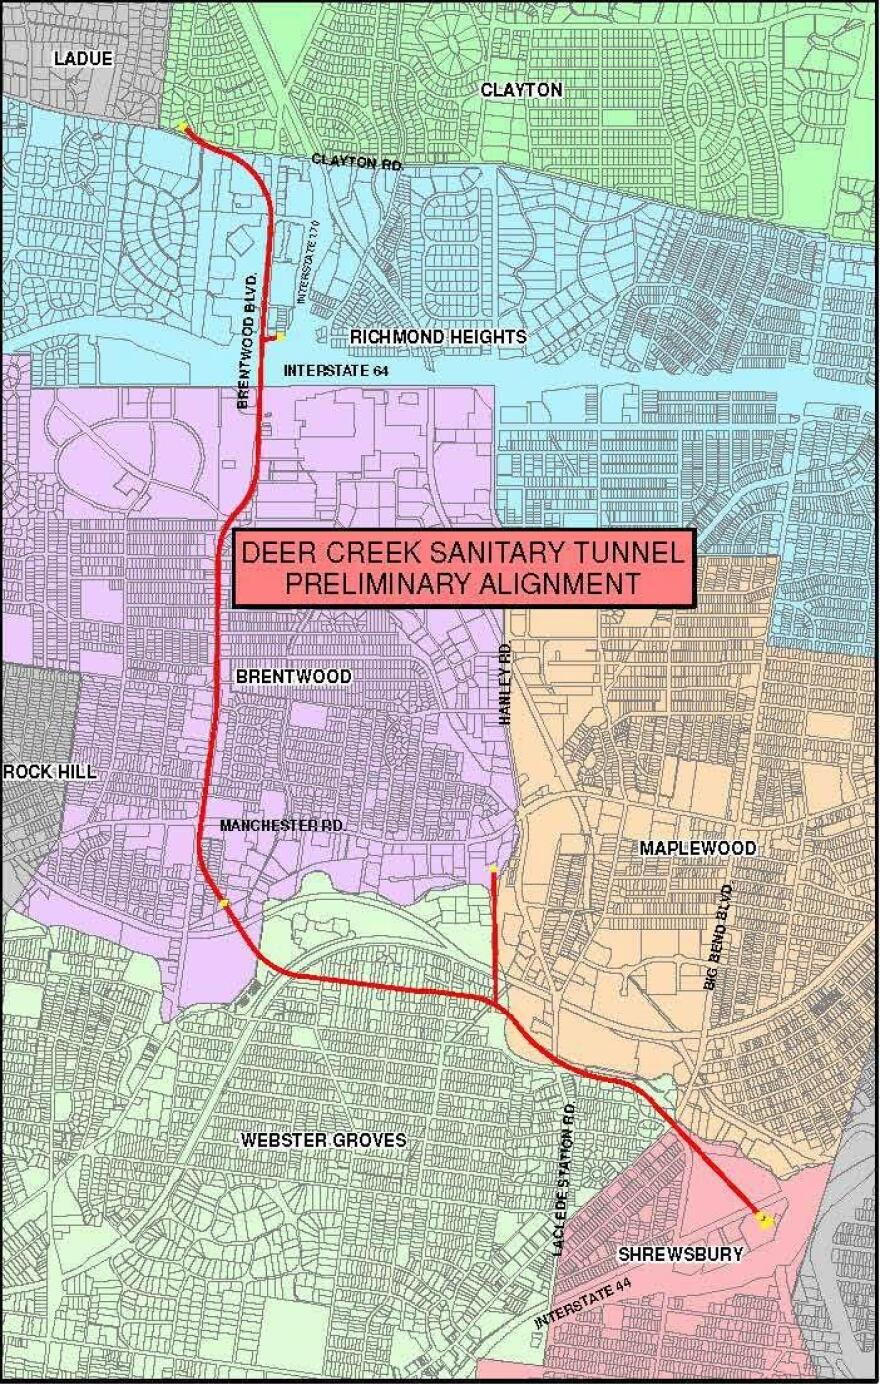 A map of the Deer Creek Sanitary Tunnel that the MSD is building in St. Louis County.